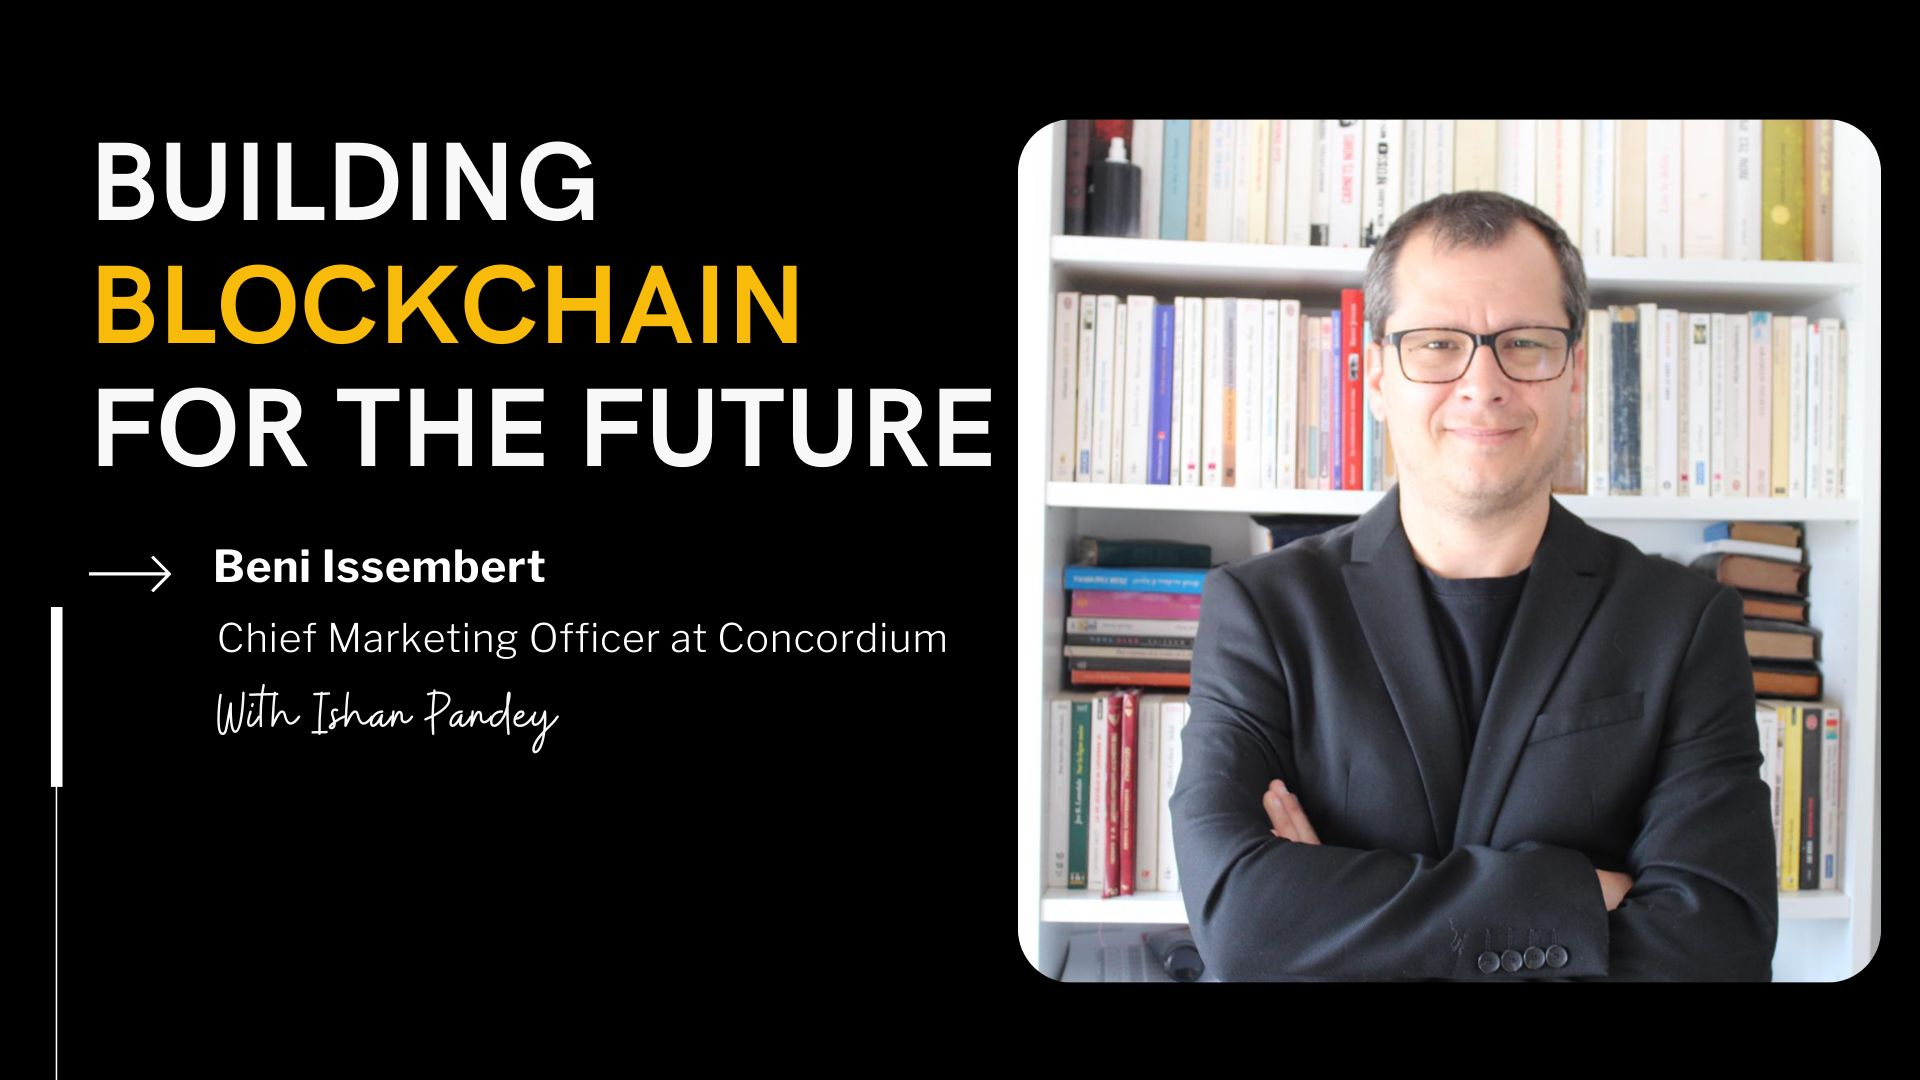 /compliance-by-design-is-the-future-of-blockchains-beni-issembert-cmo-at-concordium-pgk34ug feature image